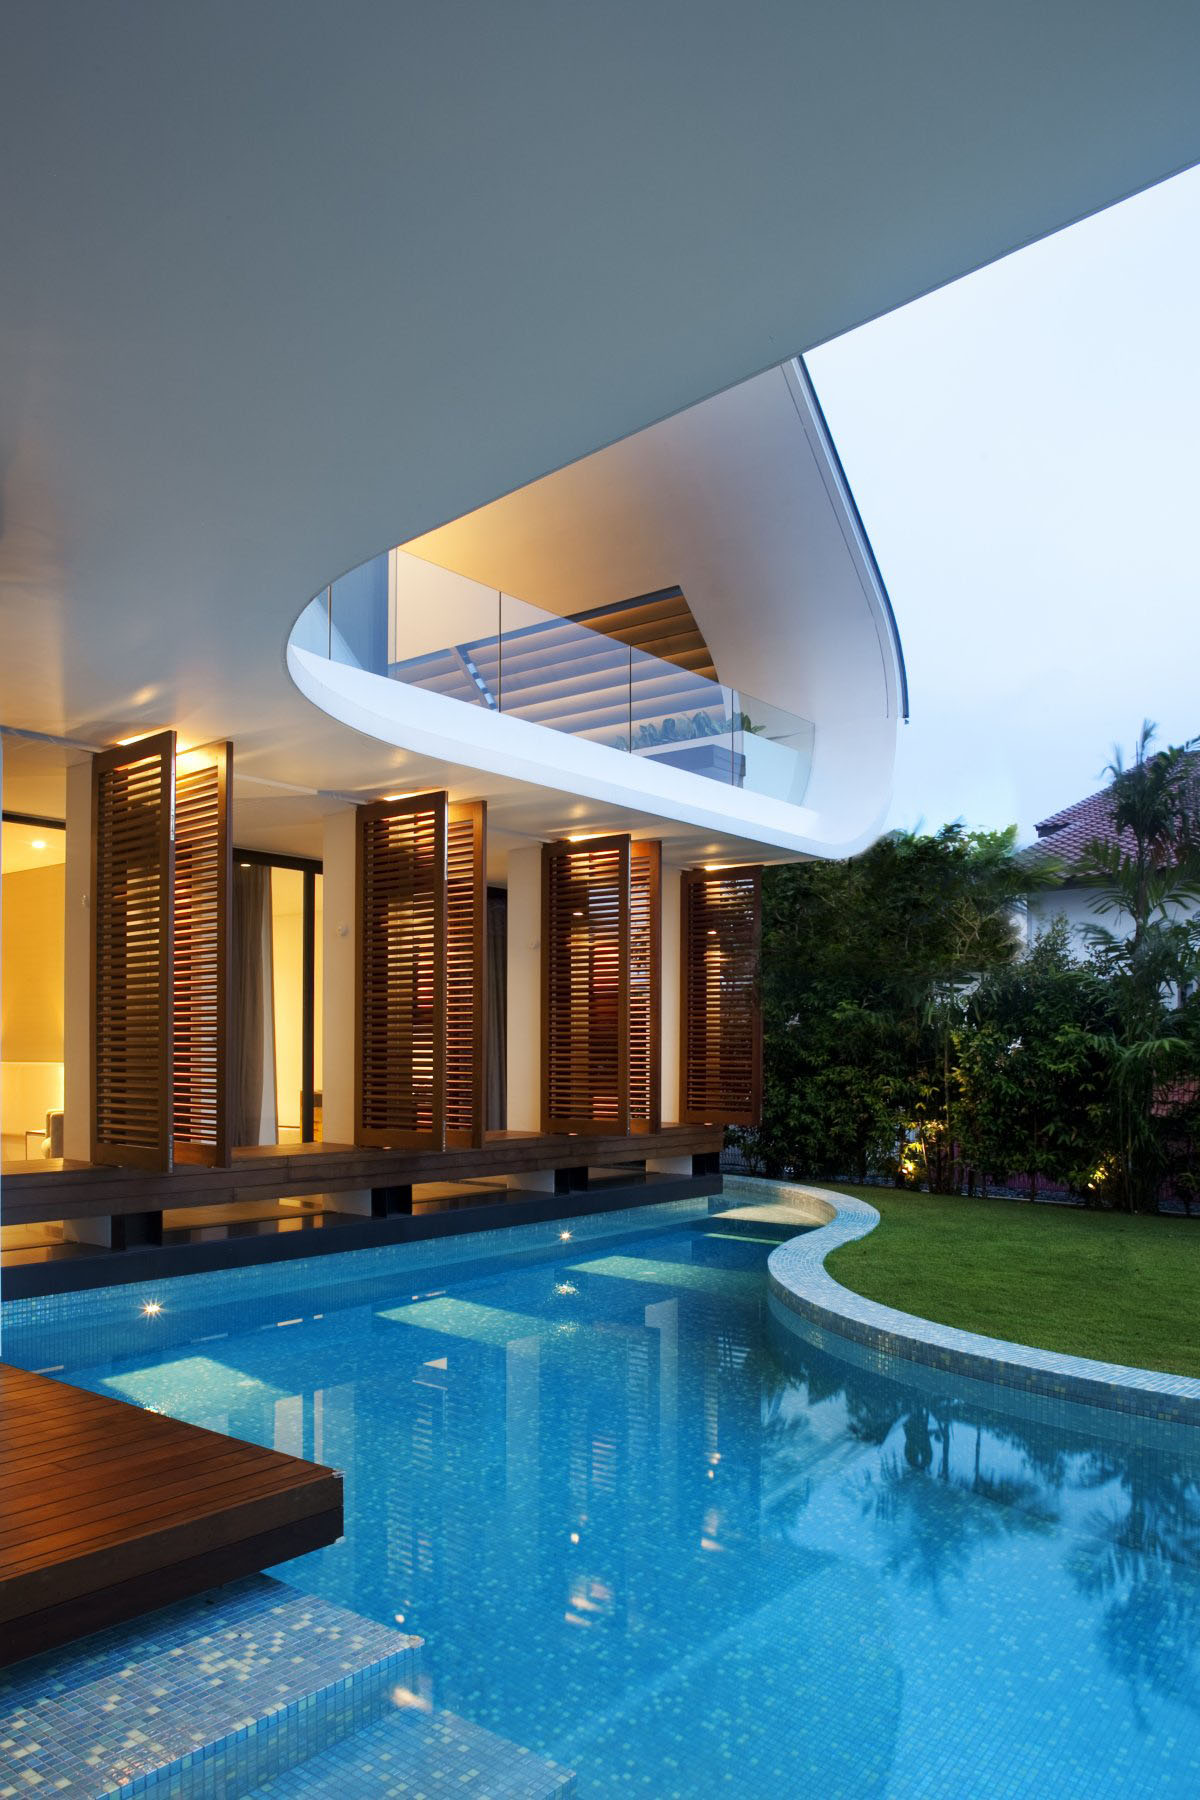 Yacht house design in singapore idesignarch interior - Modern house with pool ...